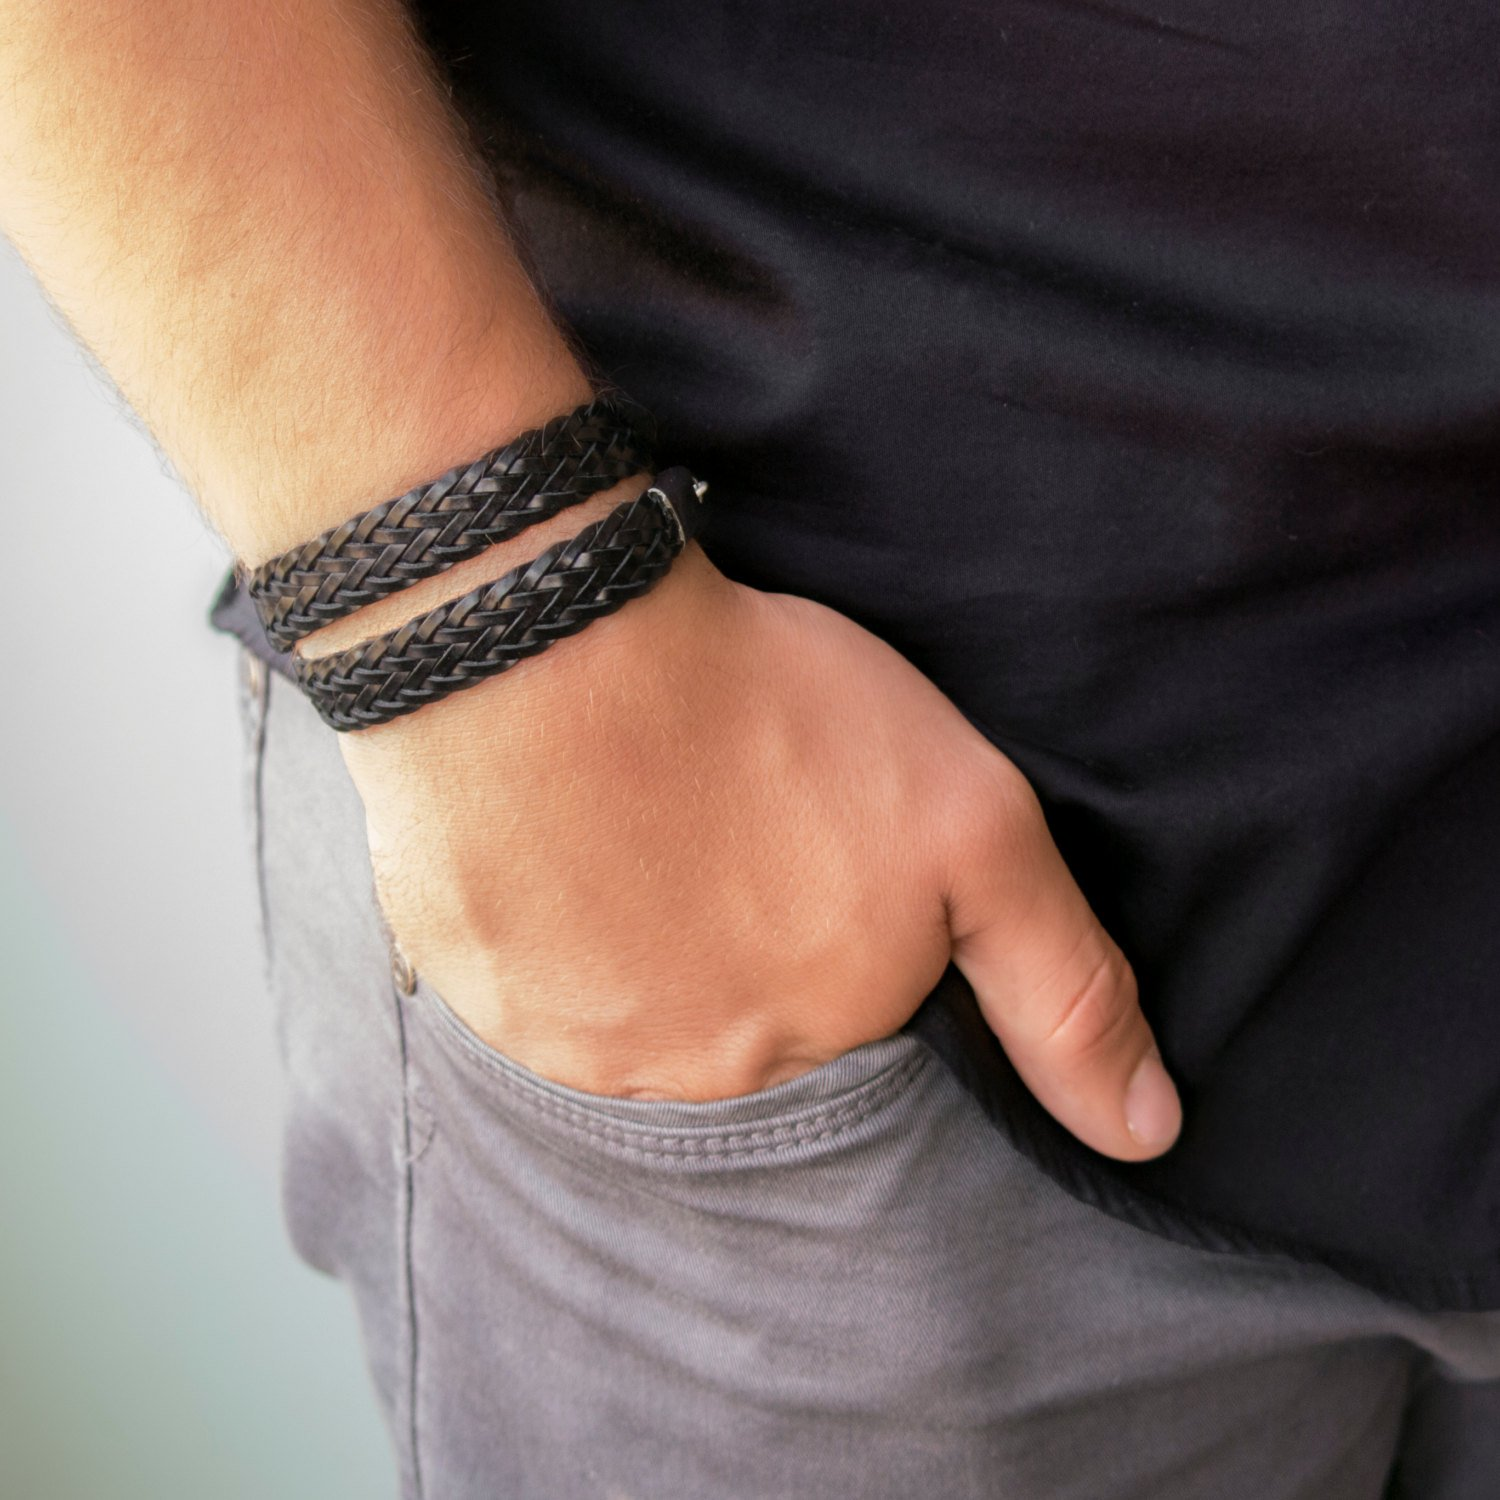 Men's Bracelet - Men's Faux Leather Bracelet - Men's Wrap Bracelet - Men's Jewelry - Guys Jewelry - Guys Bracelet - Jewelry For Men - Bracelets For Men - Male Jewelry - Male Bracelet